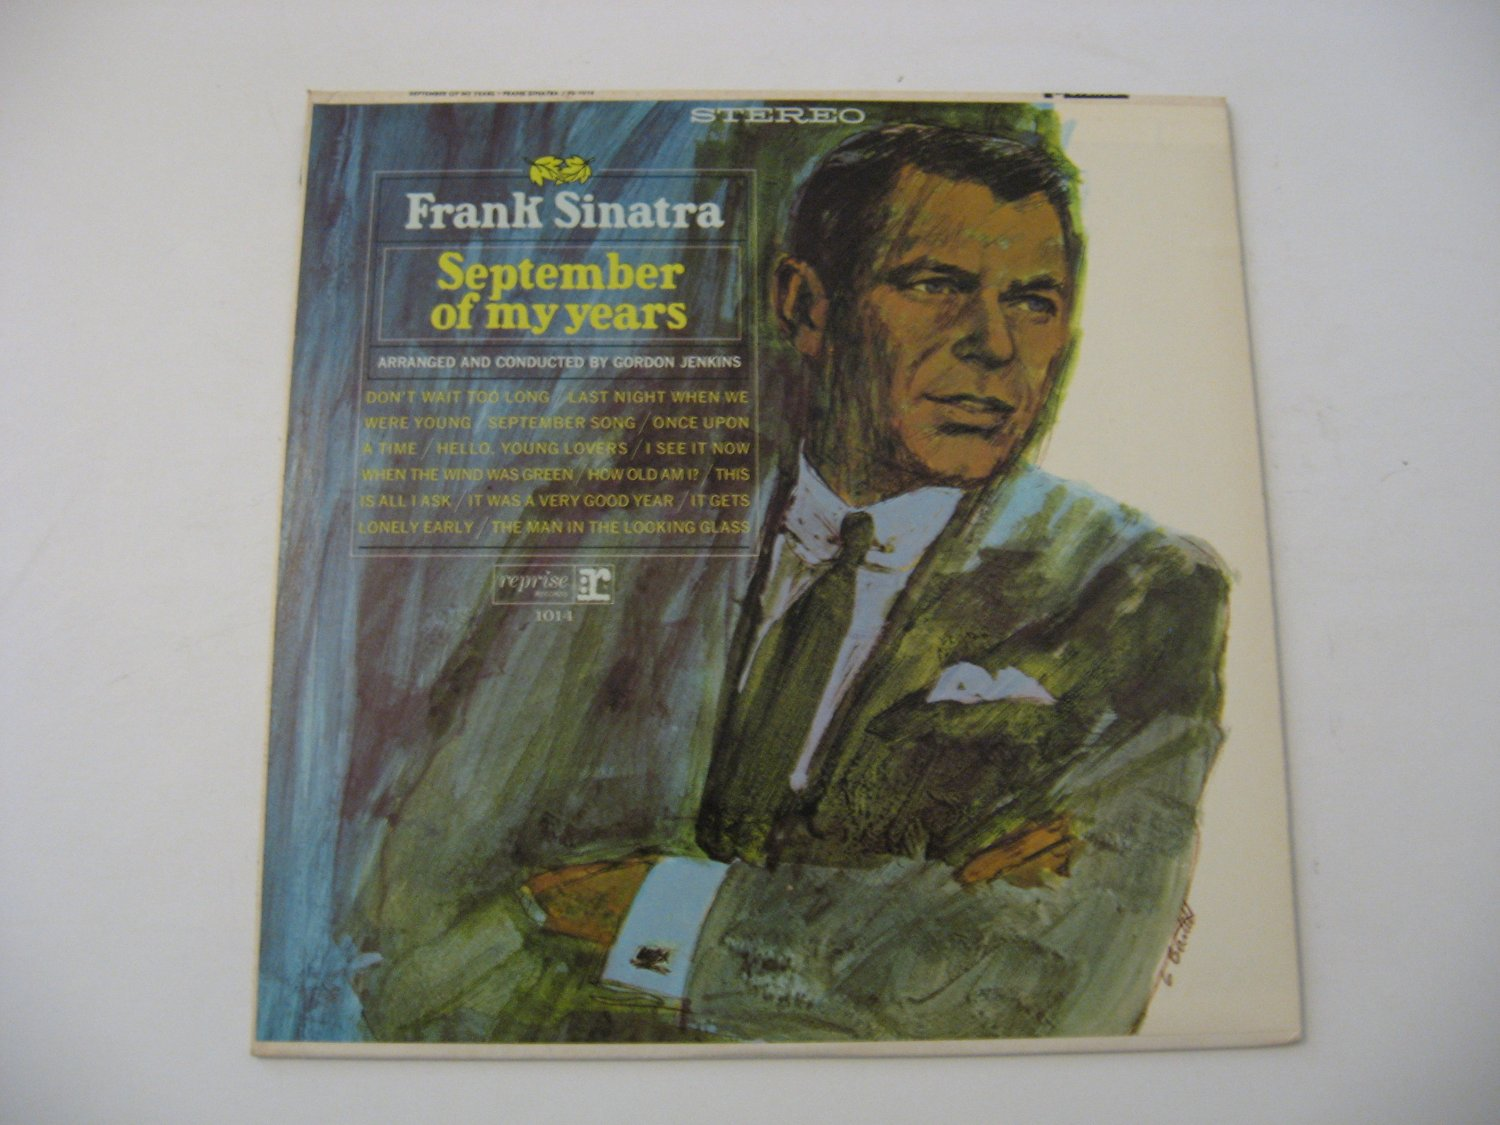 Frank Sinatra - September Of My Years - Stereo Version - Circa 1965